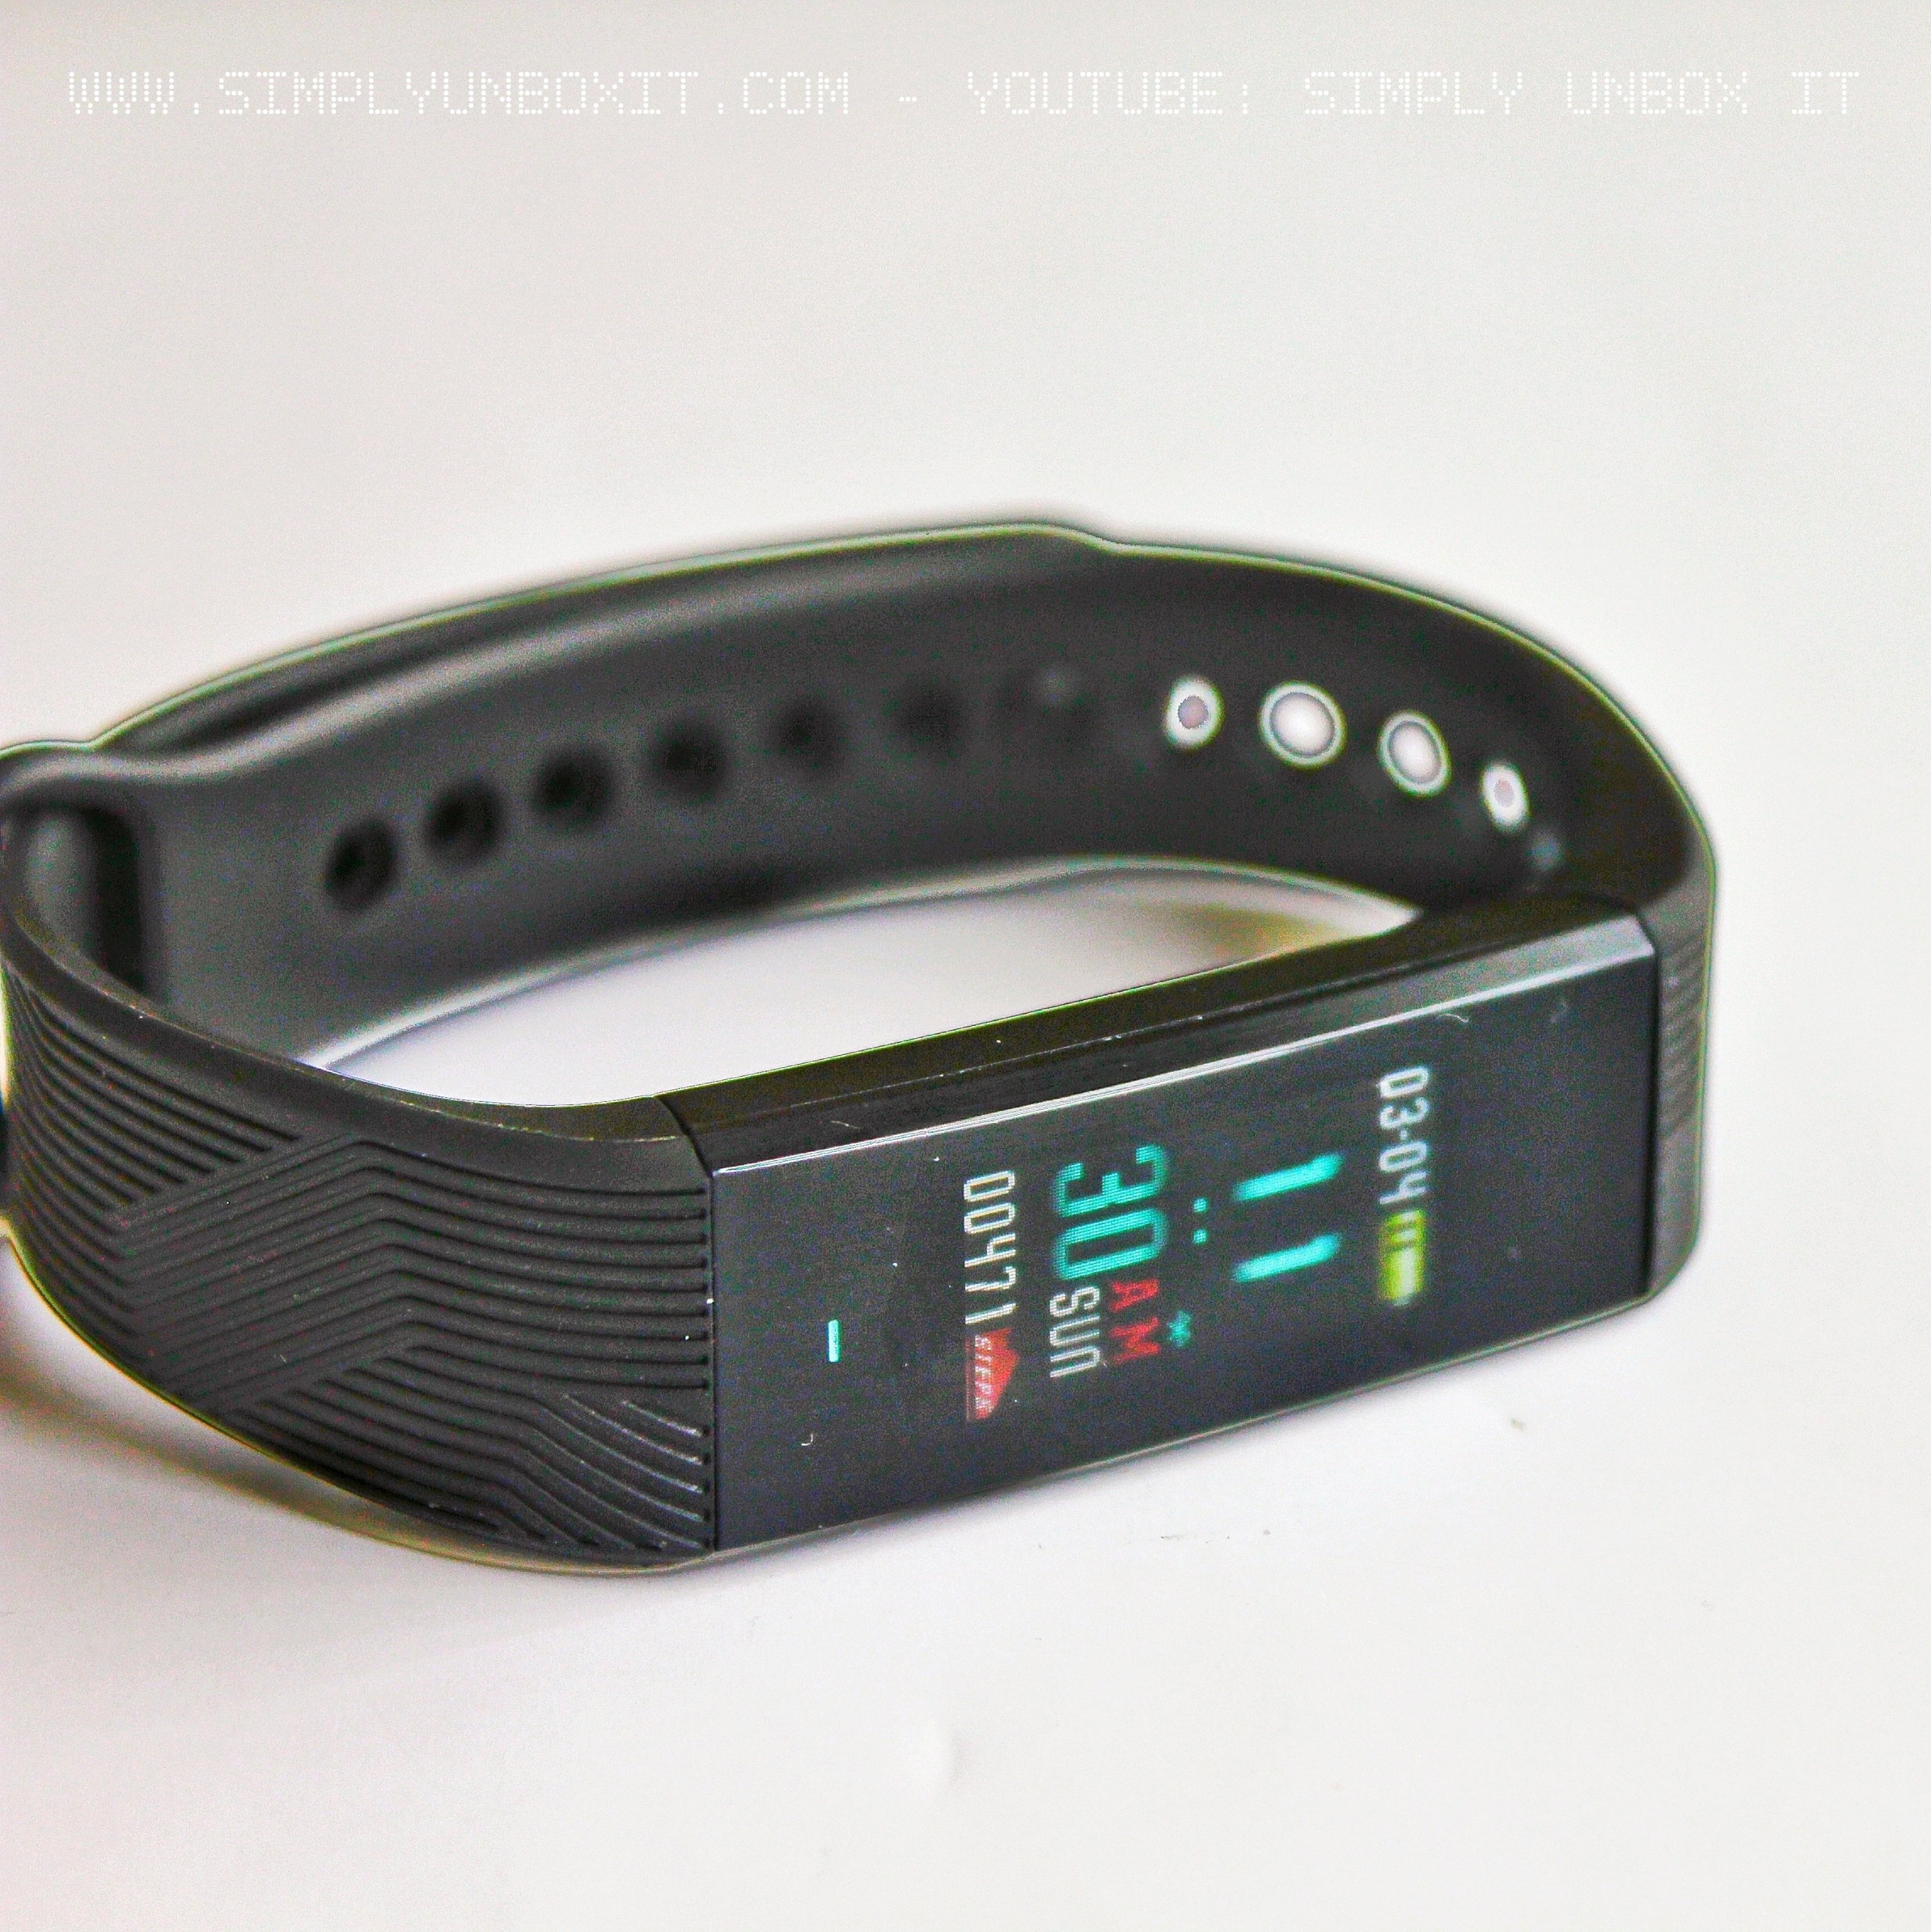 Einrichten Magyarul Skmei B30 A Smartband That Actually Works Simply Unbox It